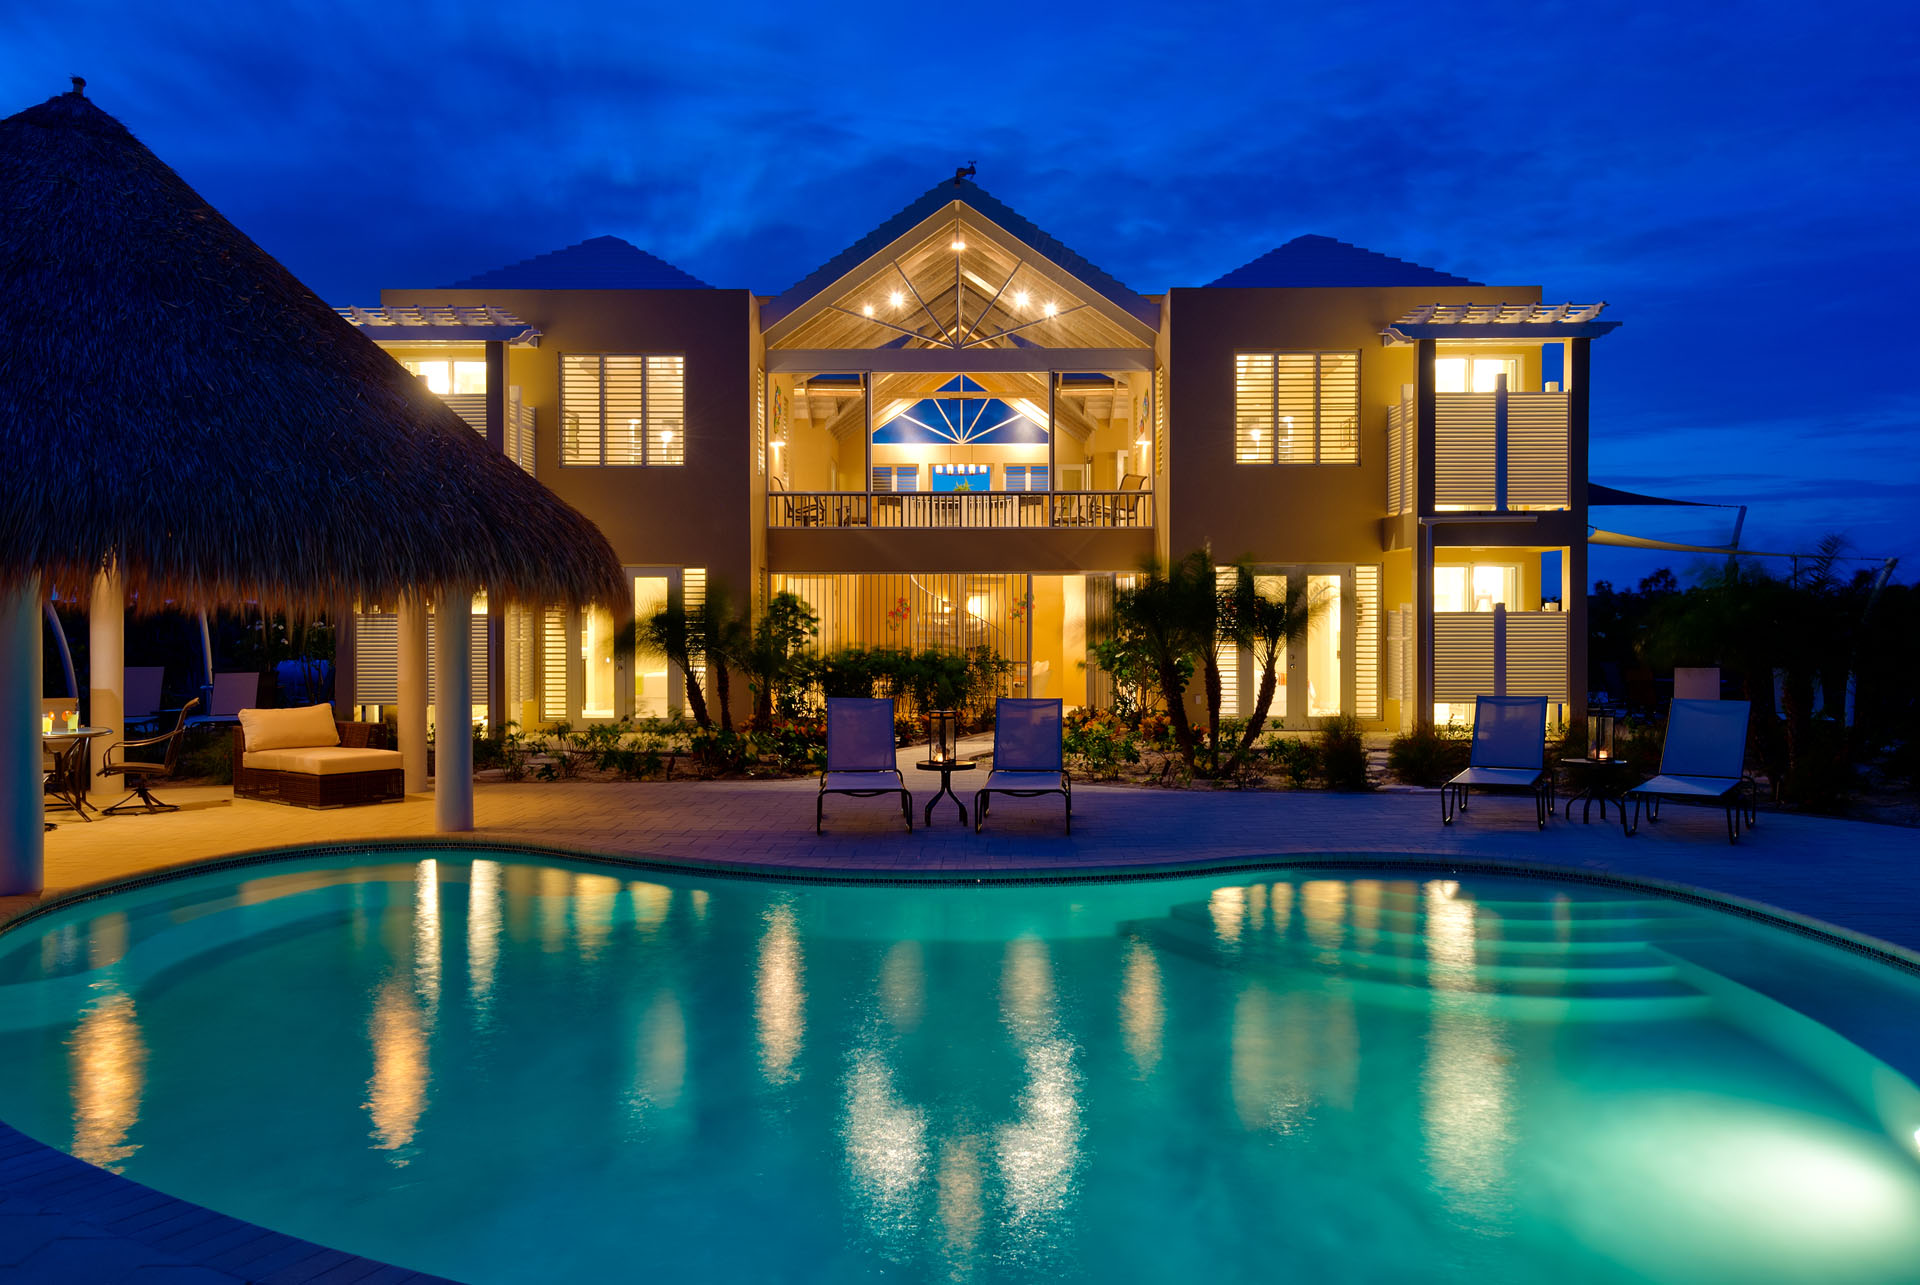 Windhaven luxury beach villa rental in Turks and Caicos